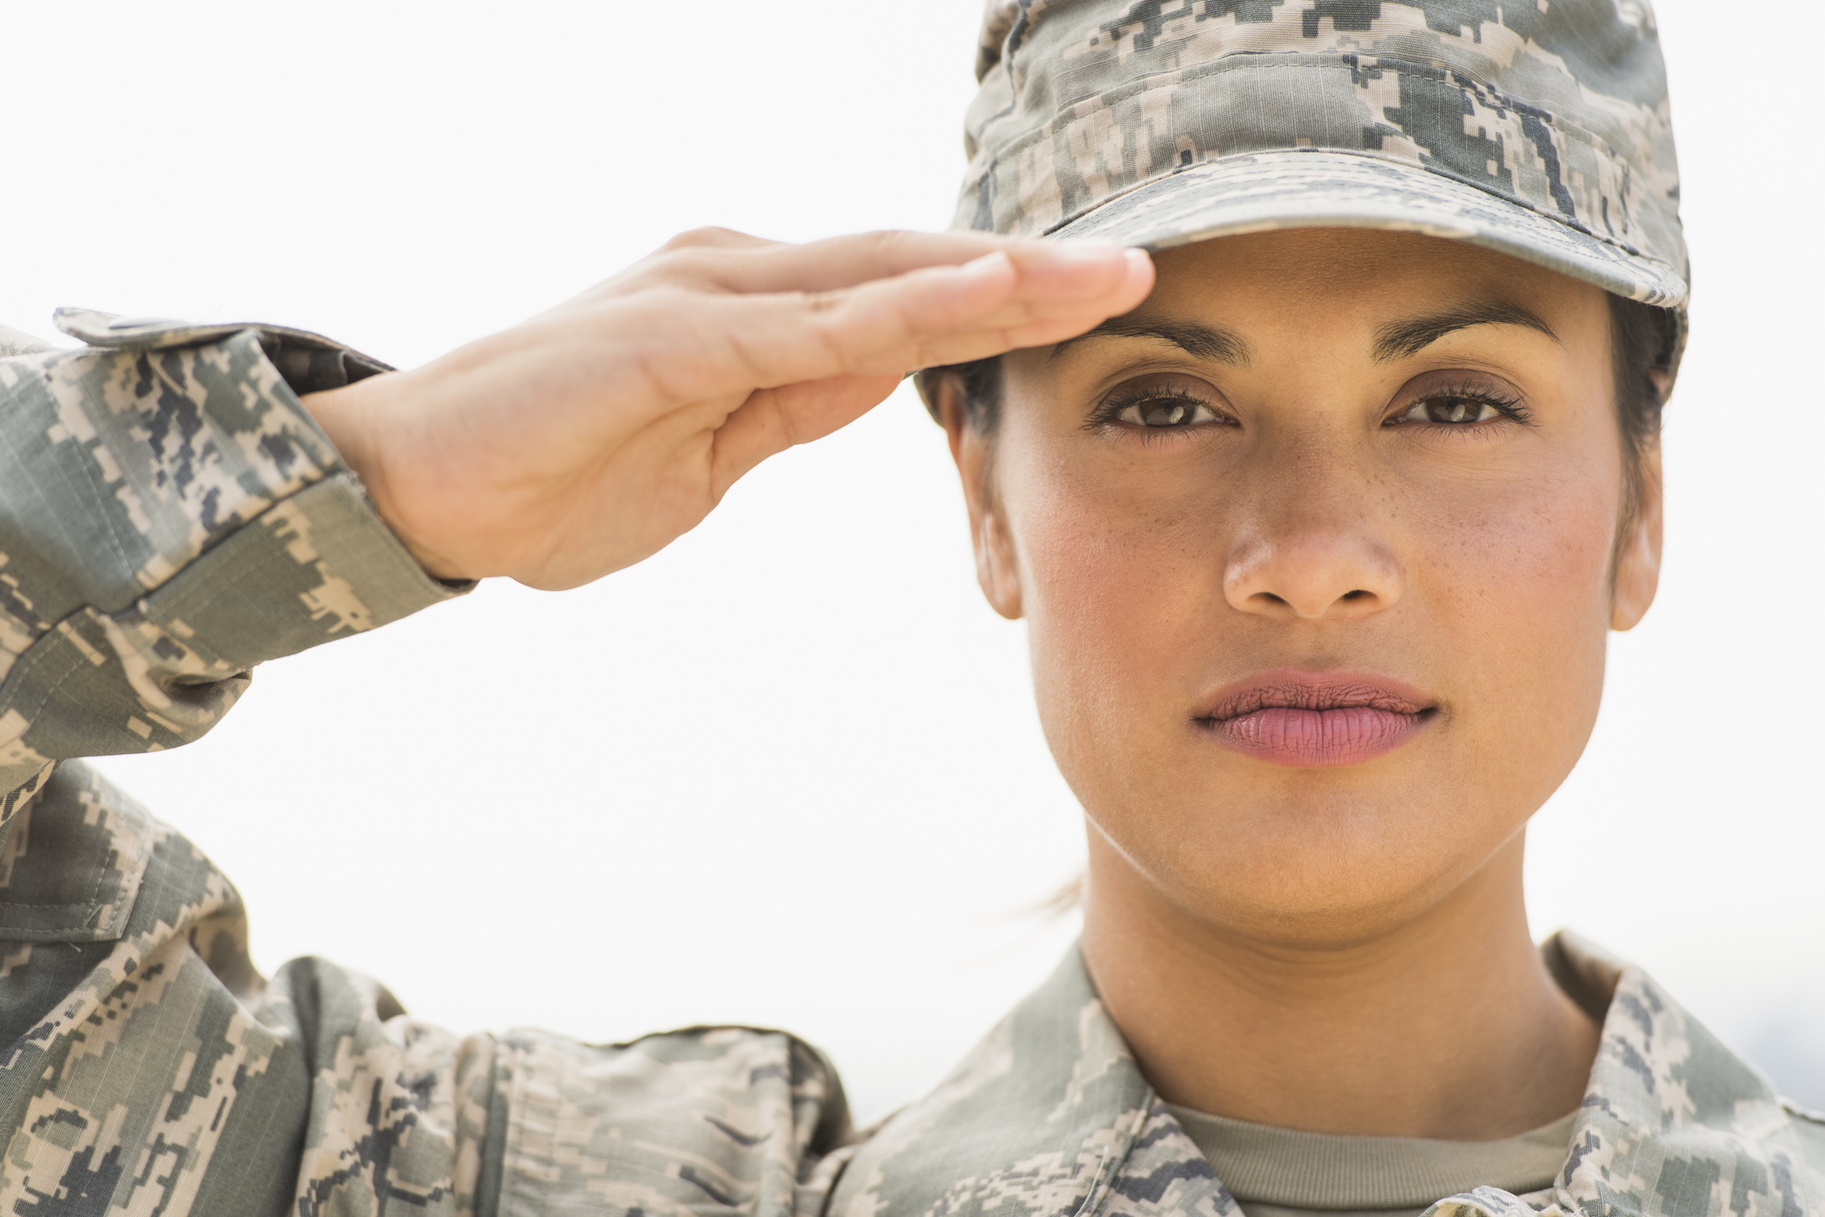 women in combat A history of military service by women and an assessment of what lies ahead for female servicemembers by kathy johnson women served in the military since the.